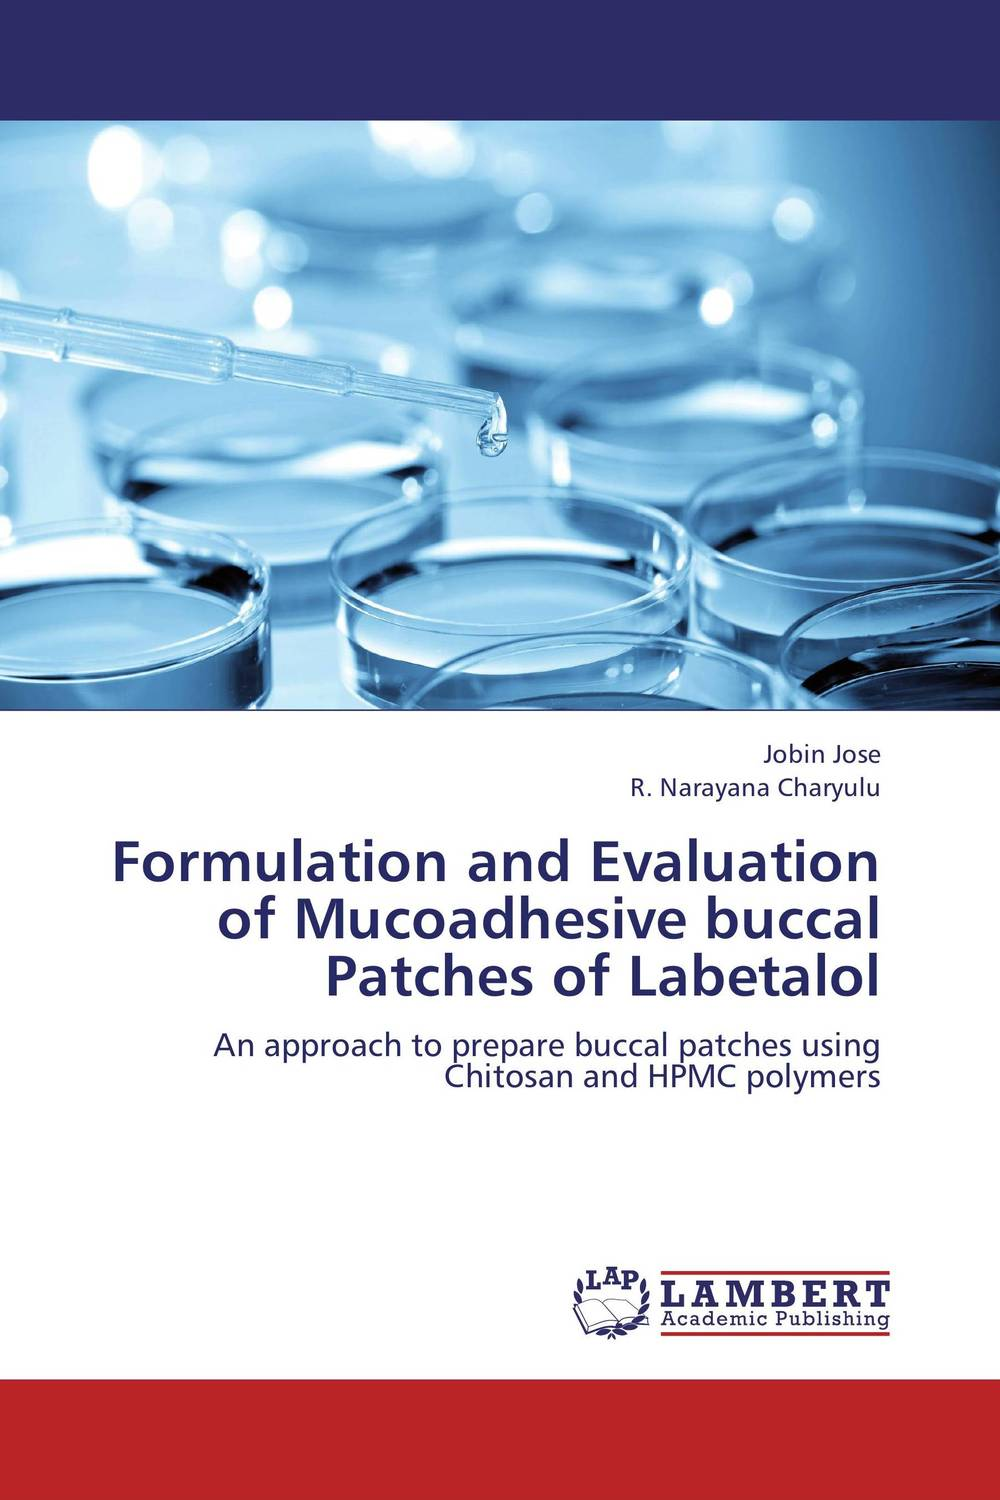 Formulation and Evaluation of Mucoadhesive buccal Patches of Labetalol amita yadav kamal singh rathore and geeta m patel formulation evaluation and optimization of mouth dissolving tablets